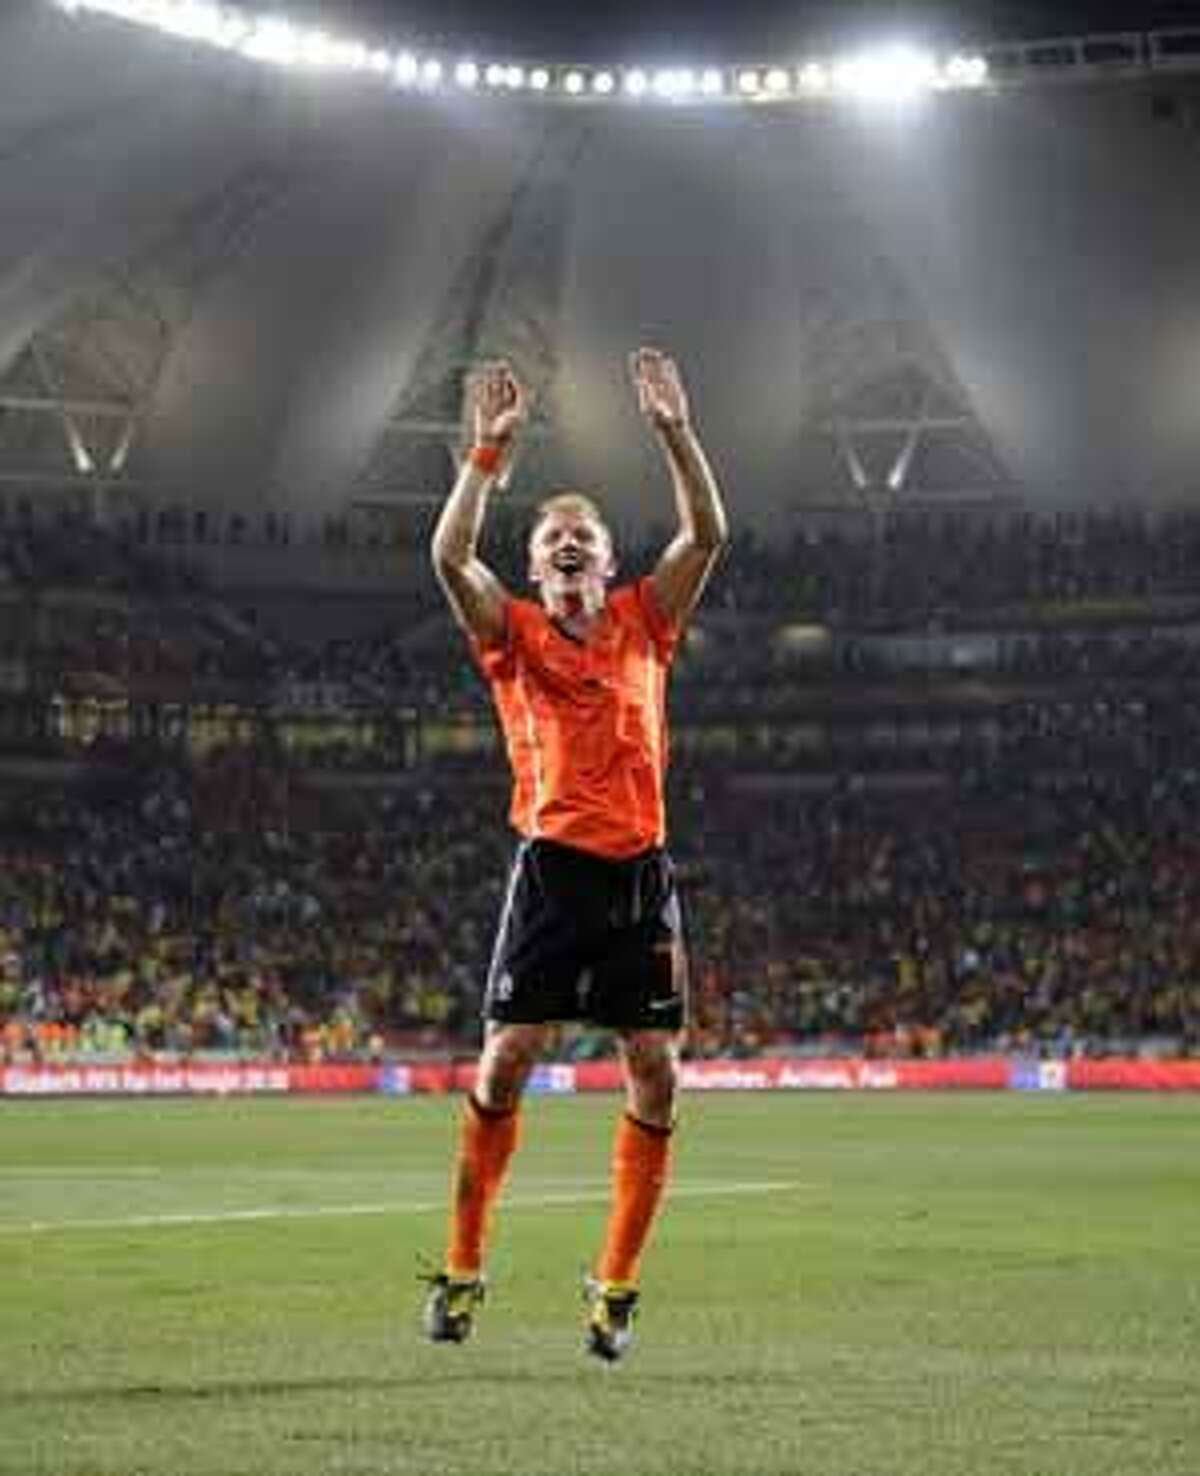 Netherlands' Dirk Kuyt celebrates following the World Cup quarterfinal soccer match between the Netherlands and Brazil at Nelson Mandela Bay Stadium in Port Elizabeth, South Africa, Friday, July 2, 2010. Netherlands defeated Brazil 2-1 on Friday, becoming the first semifinalist of the World Cup. (AP Photo/Martin Meissner)